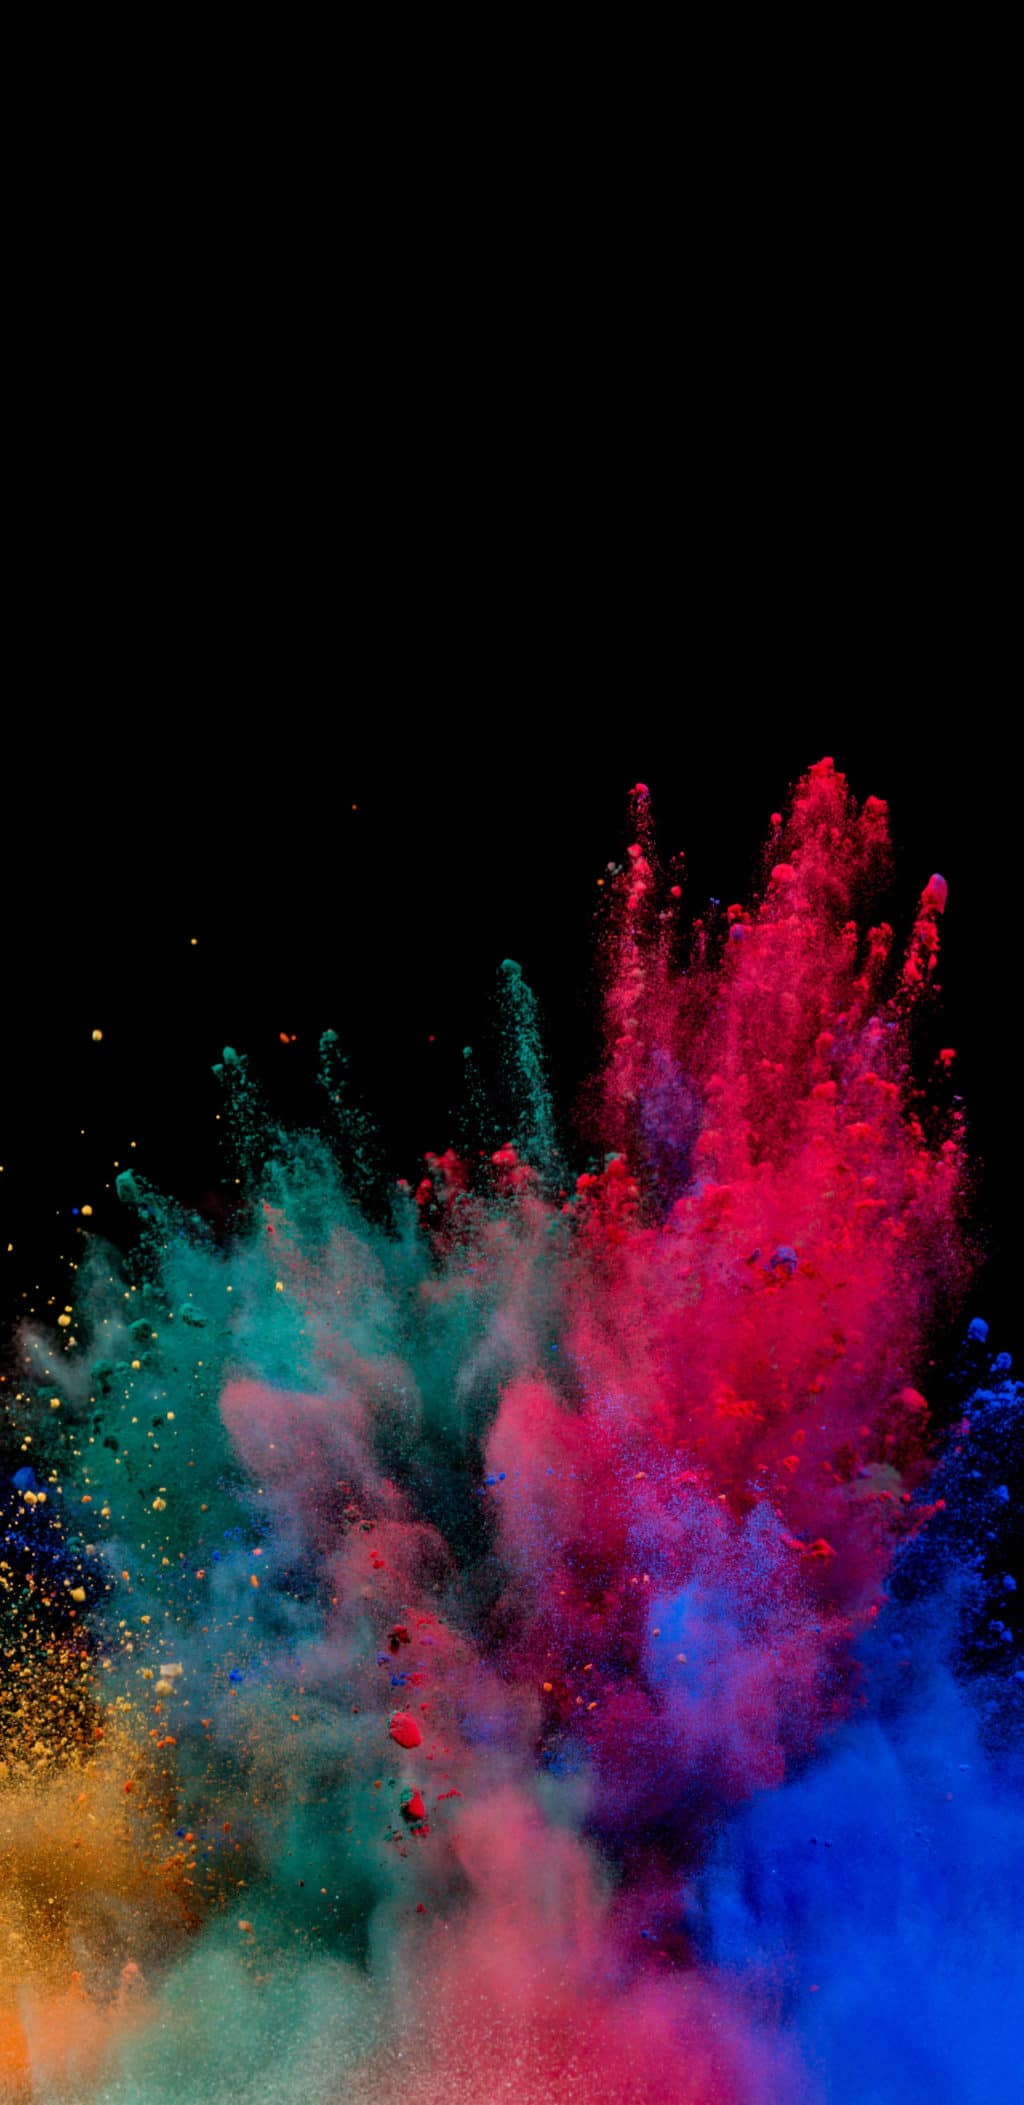 1024x2105 Top QHD+ Wallpapers for Samsung Galaxy S9